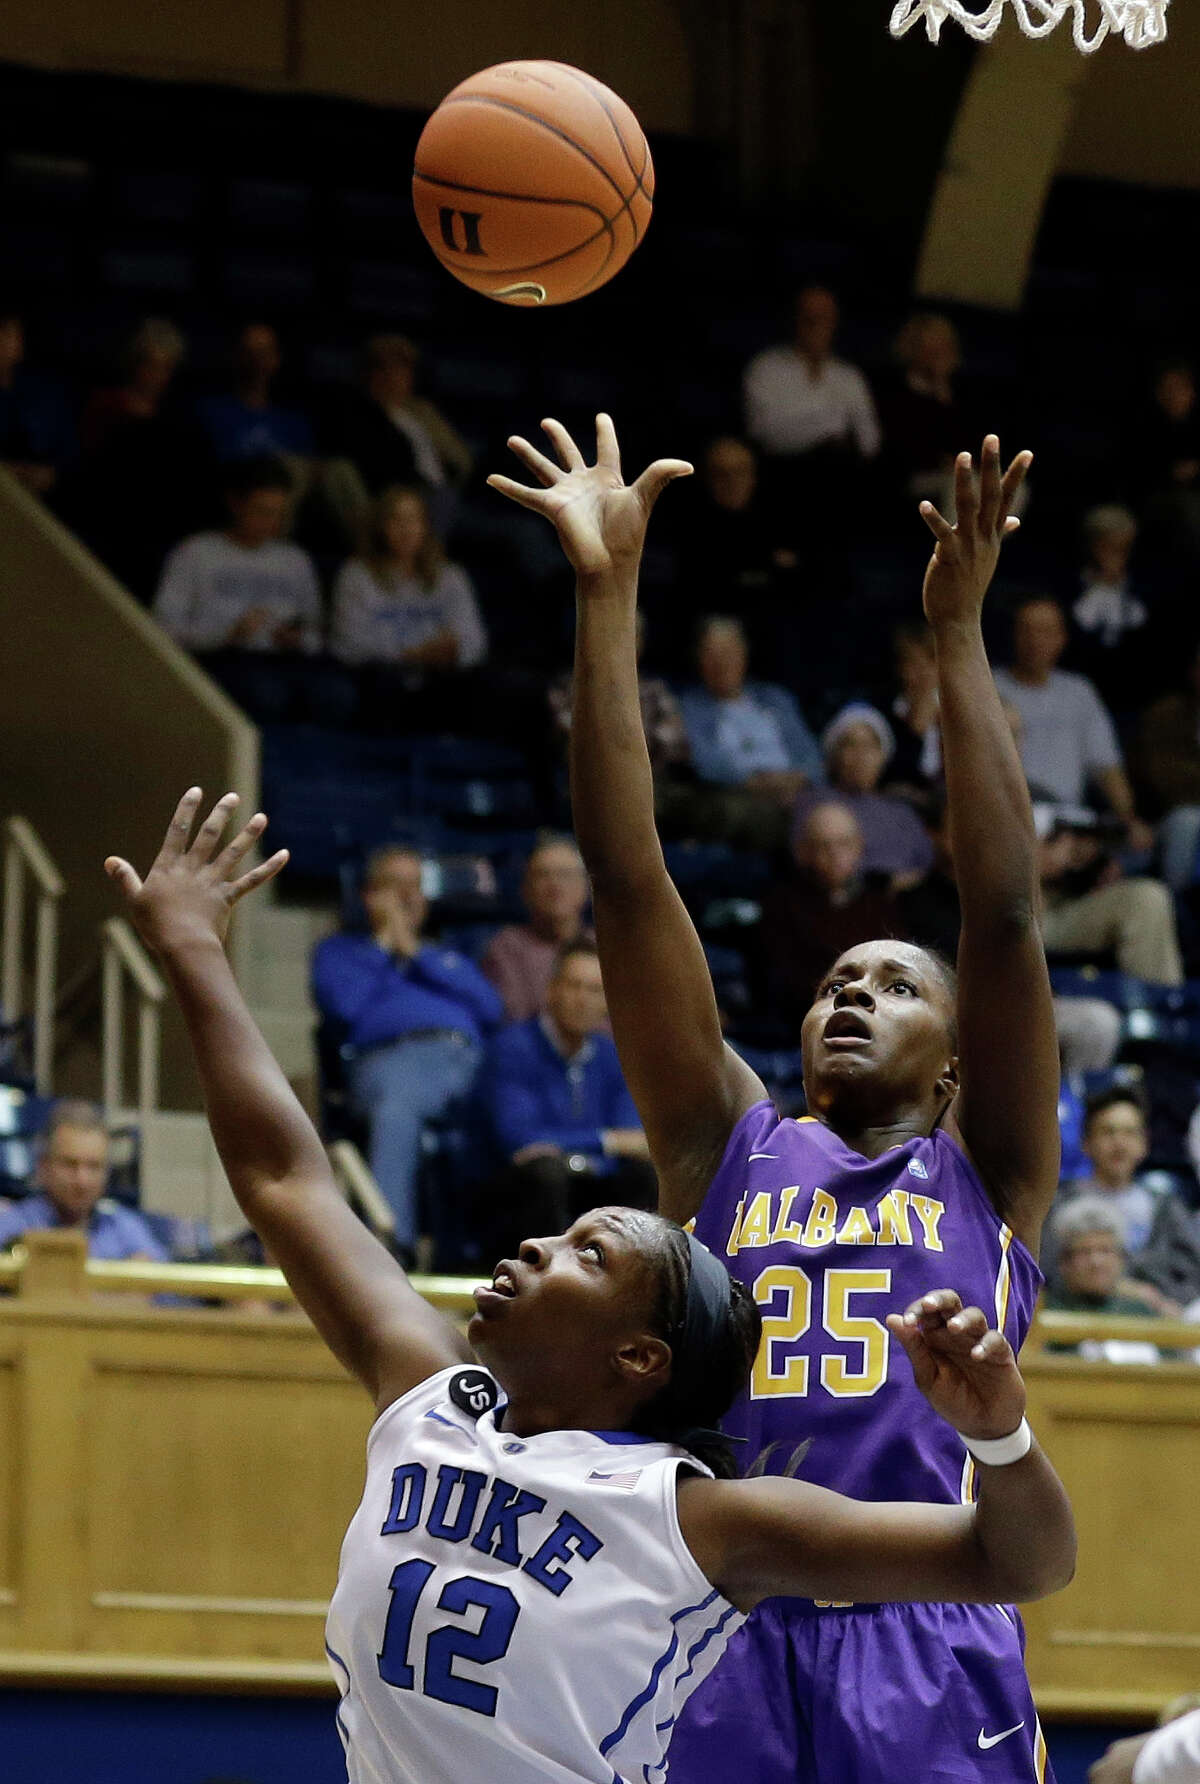 Duke's Chelsea Gray (12) defends as Albany's Shereesha Richards (25) shoots during the second half of an NCAA college basketball game in Durham, N.C., Thursday, Dec. 19, 2013. Duke won 80-51. (AP Photo/Gerry Broome) ORG XMIT: NCGB106